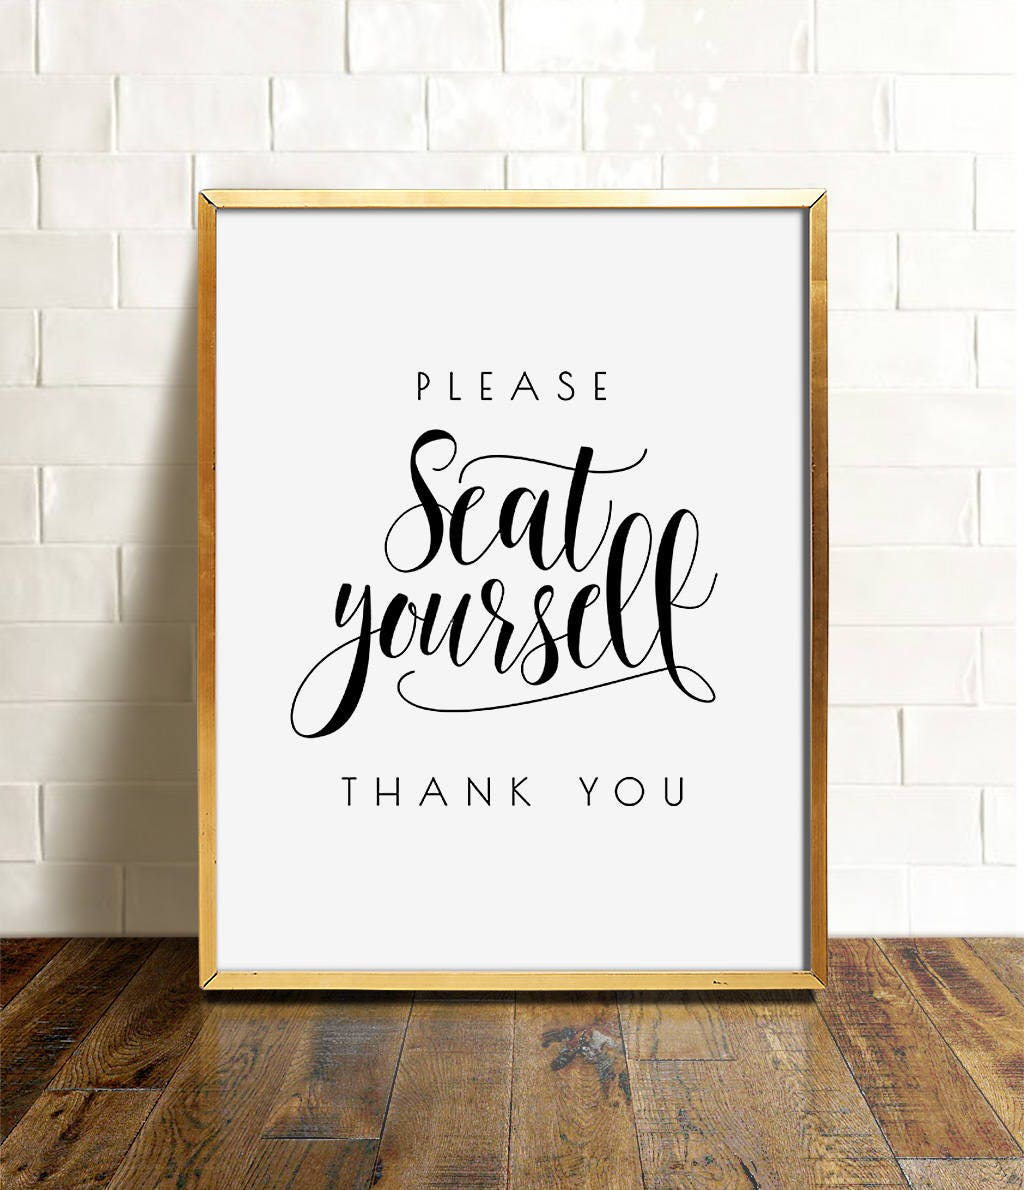 Please seat yourself Bathroom wall decor PRINTABLE art